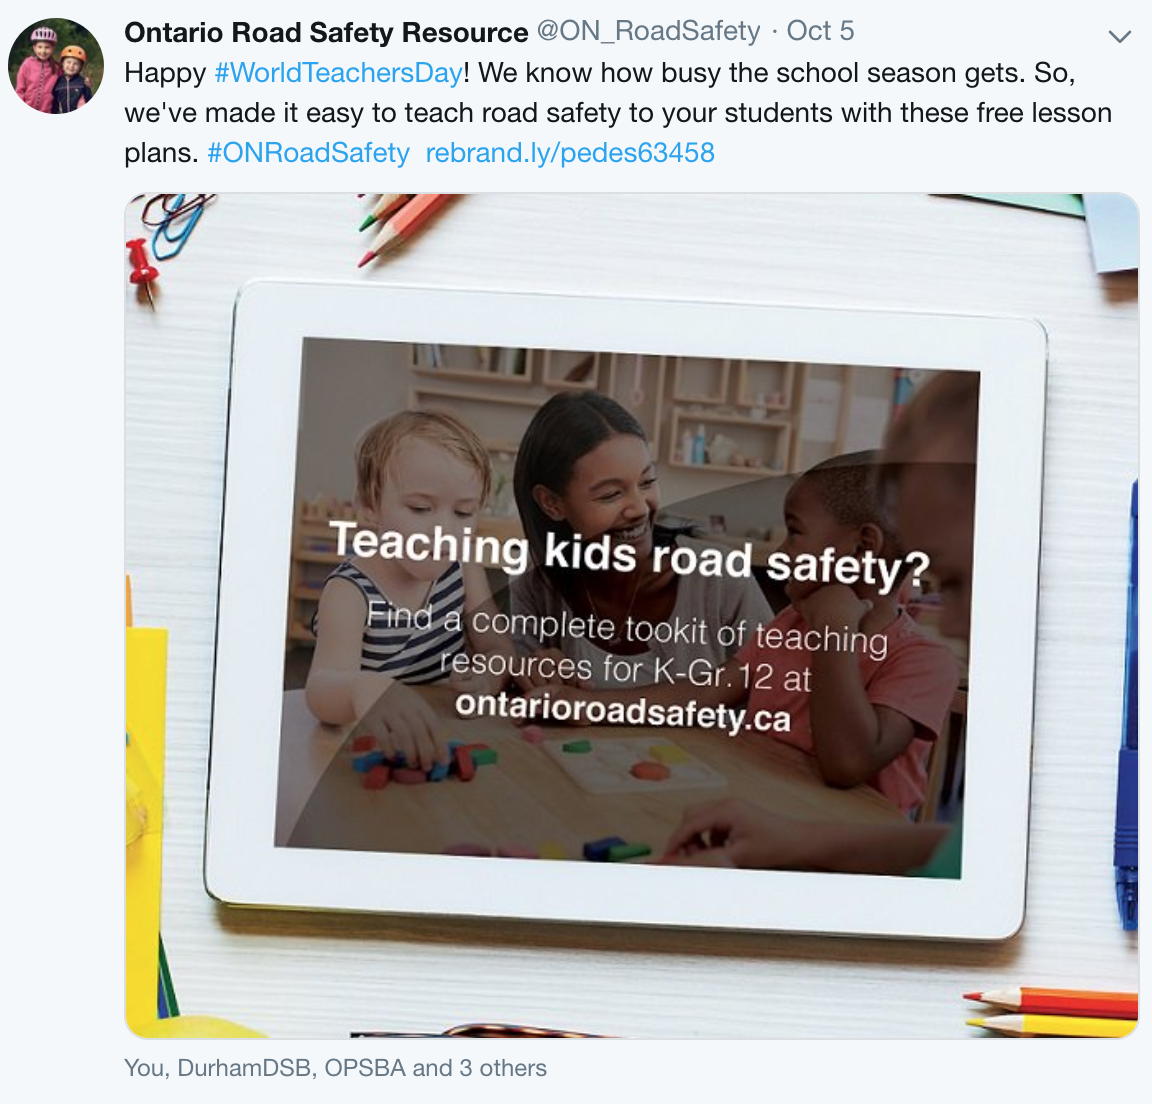 A Tweet from the Ontario Road Safety Resource about World Teachers Day, written by MediaFace's social media specialists.